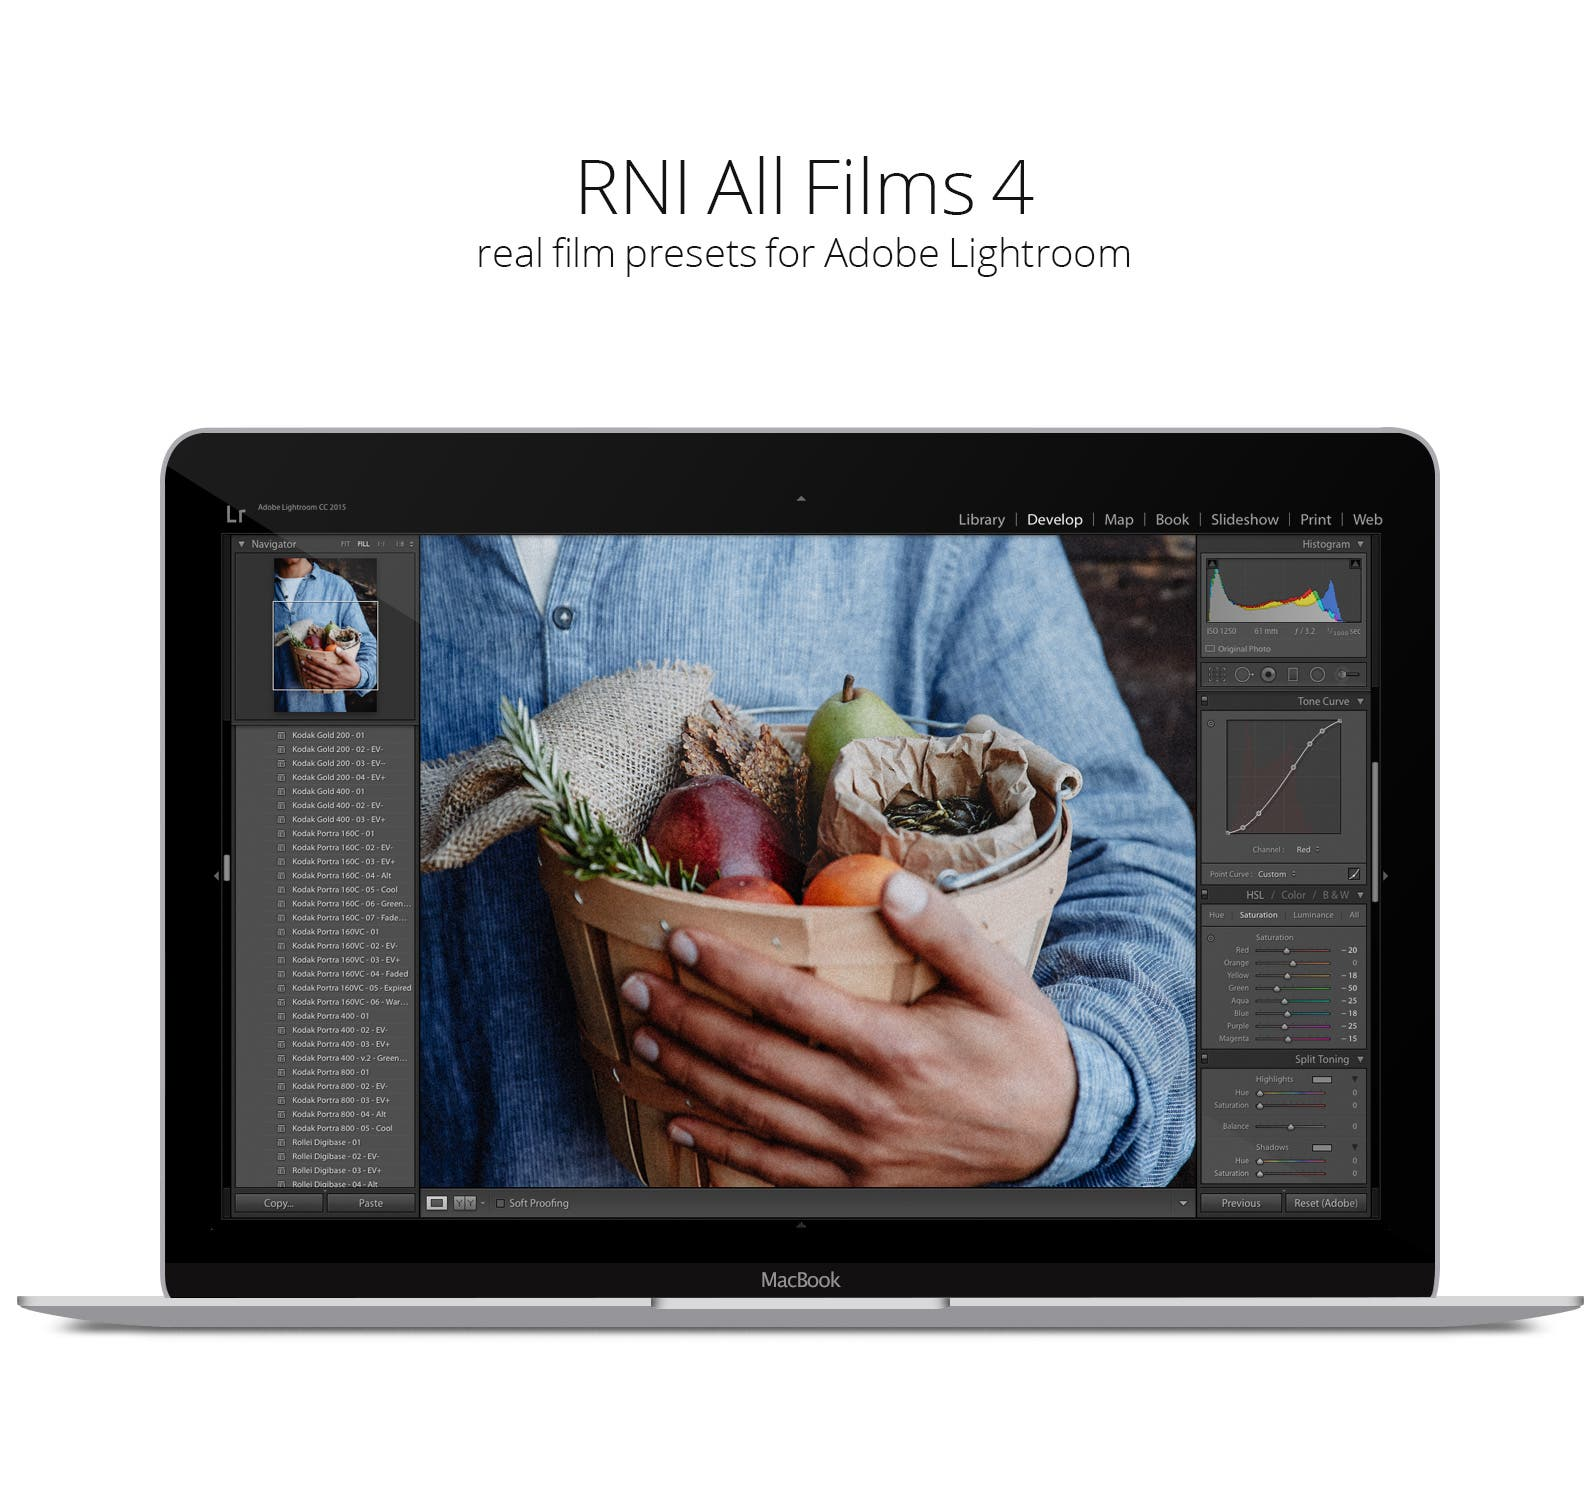 RNI All Films Gets Updated to Support Nikon Z6/Z7, Leica DLux 7, and More